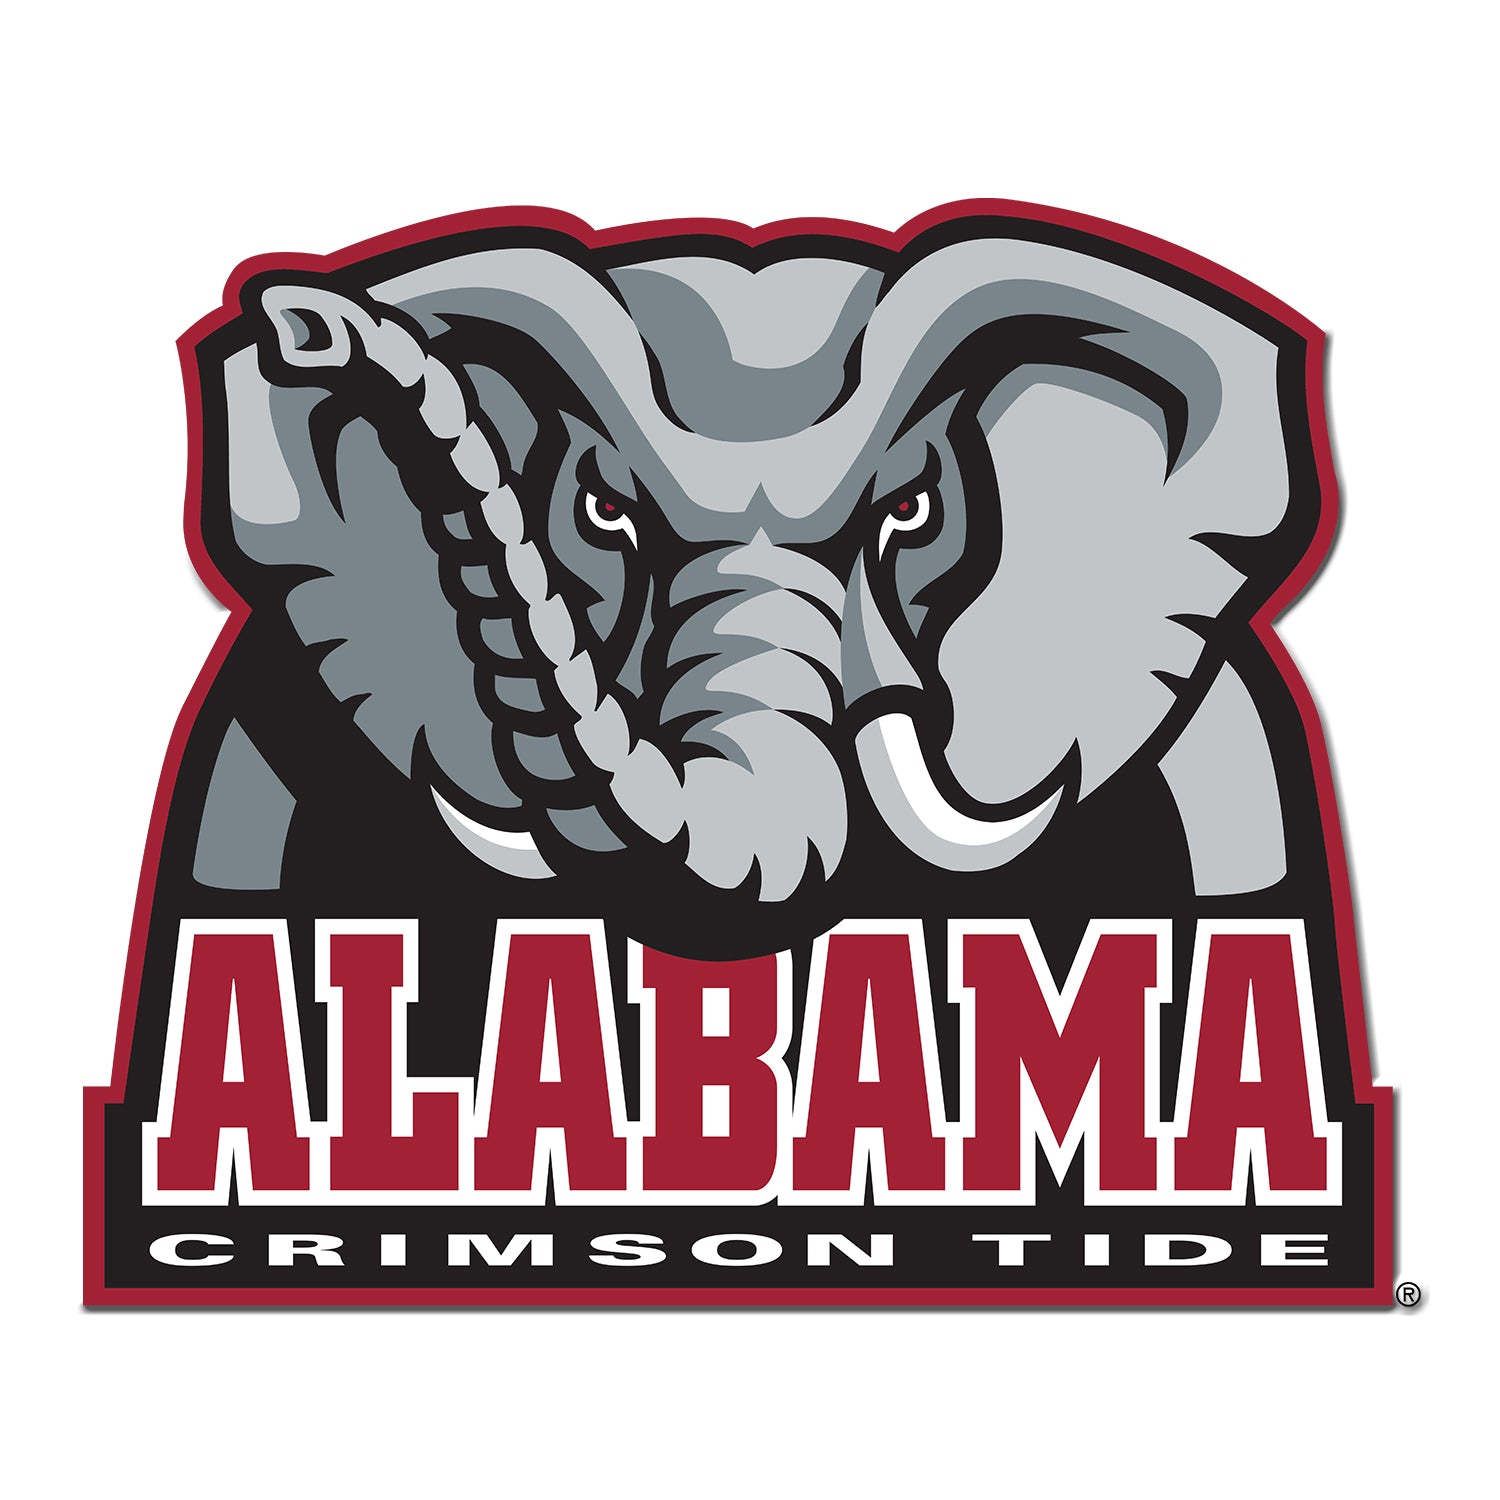 Alabama Crimson Tide -  Alabama Crimson Tide Elephant Single Layer Dimensional